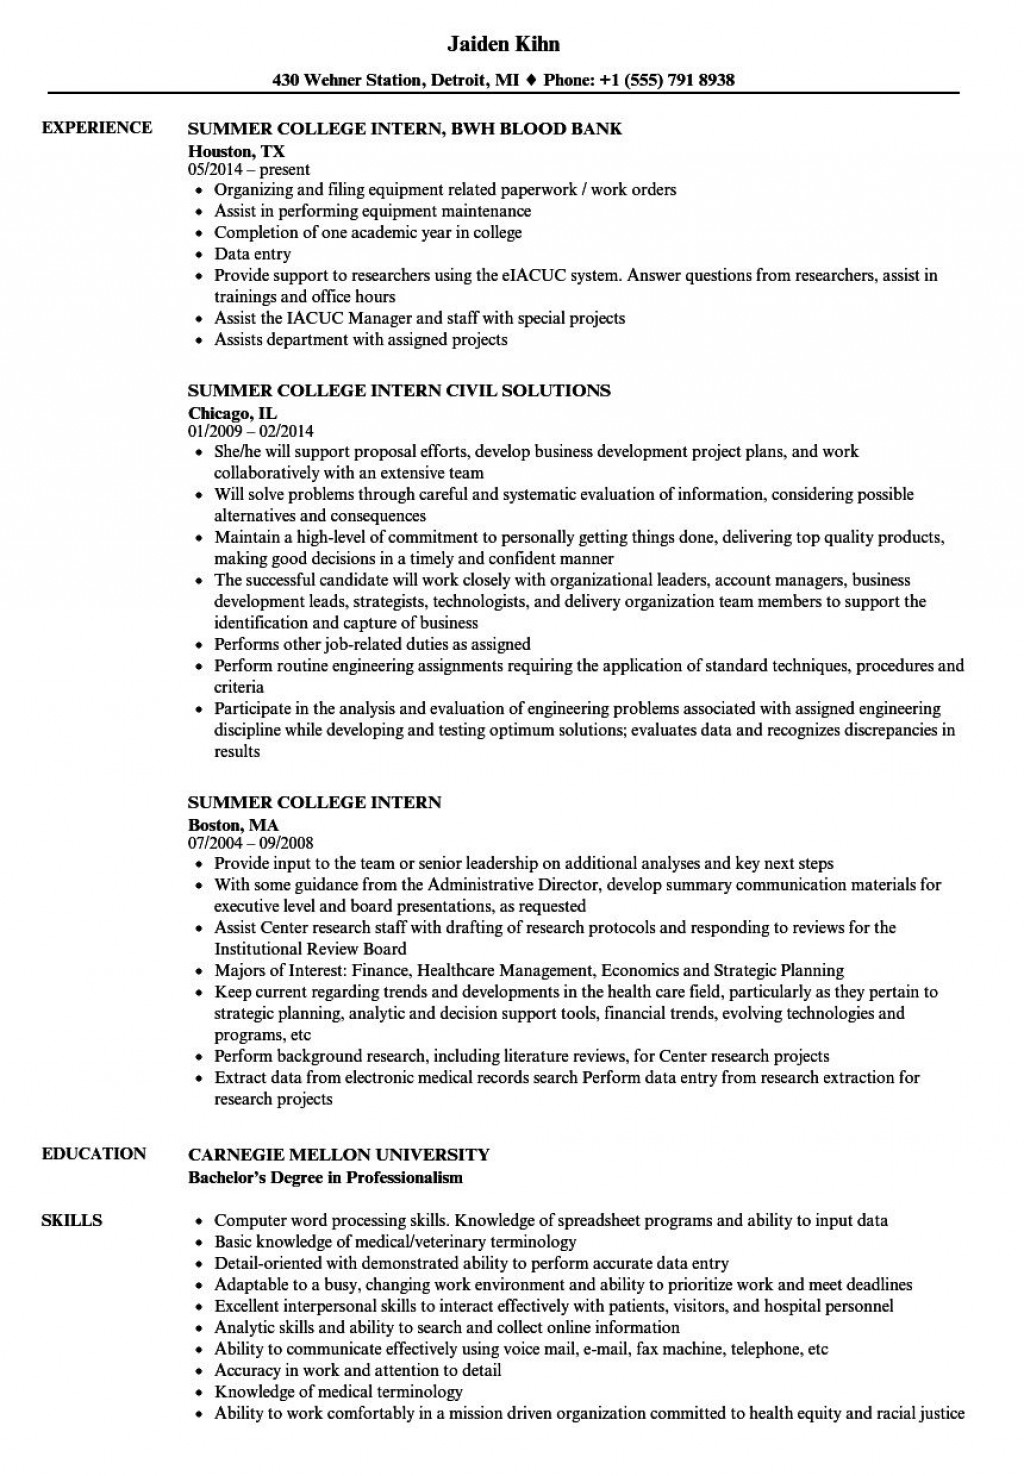 009 Amazing College Internship Resume Template Inspiration  Student Job For DownloadLarge